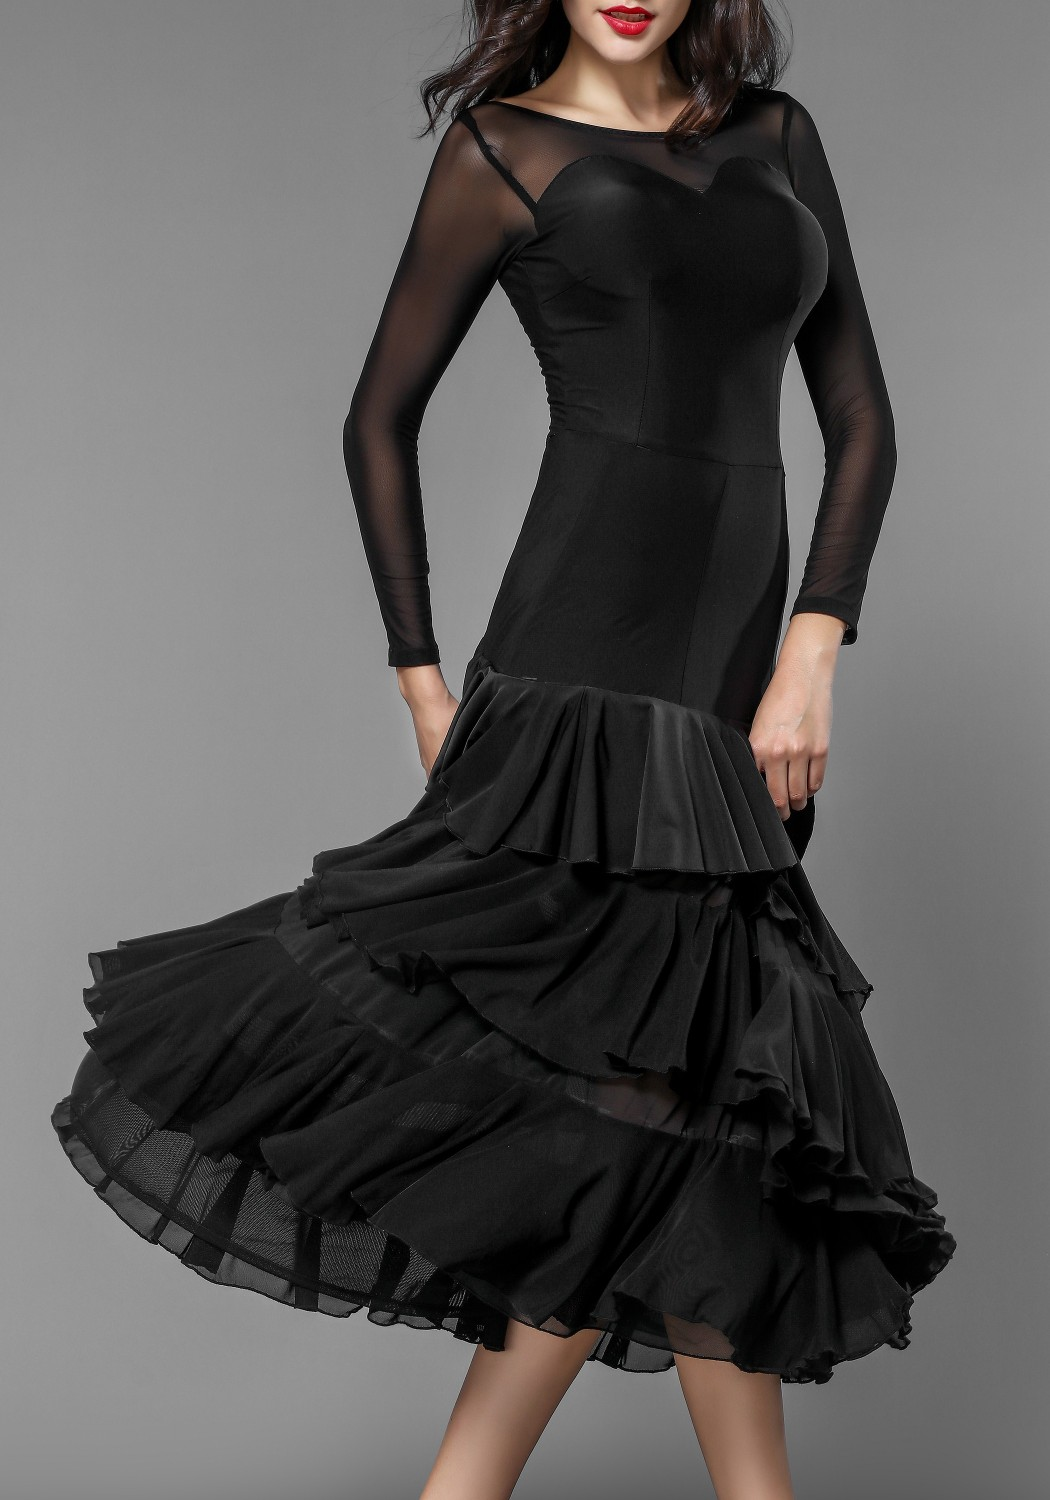 Ballroom Smooth Crepe Sexy Layered Accordion Pleat Practice Dress